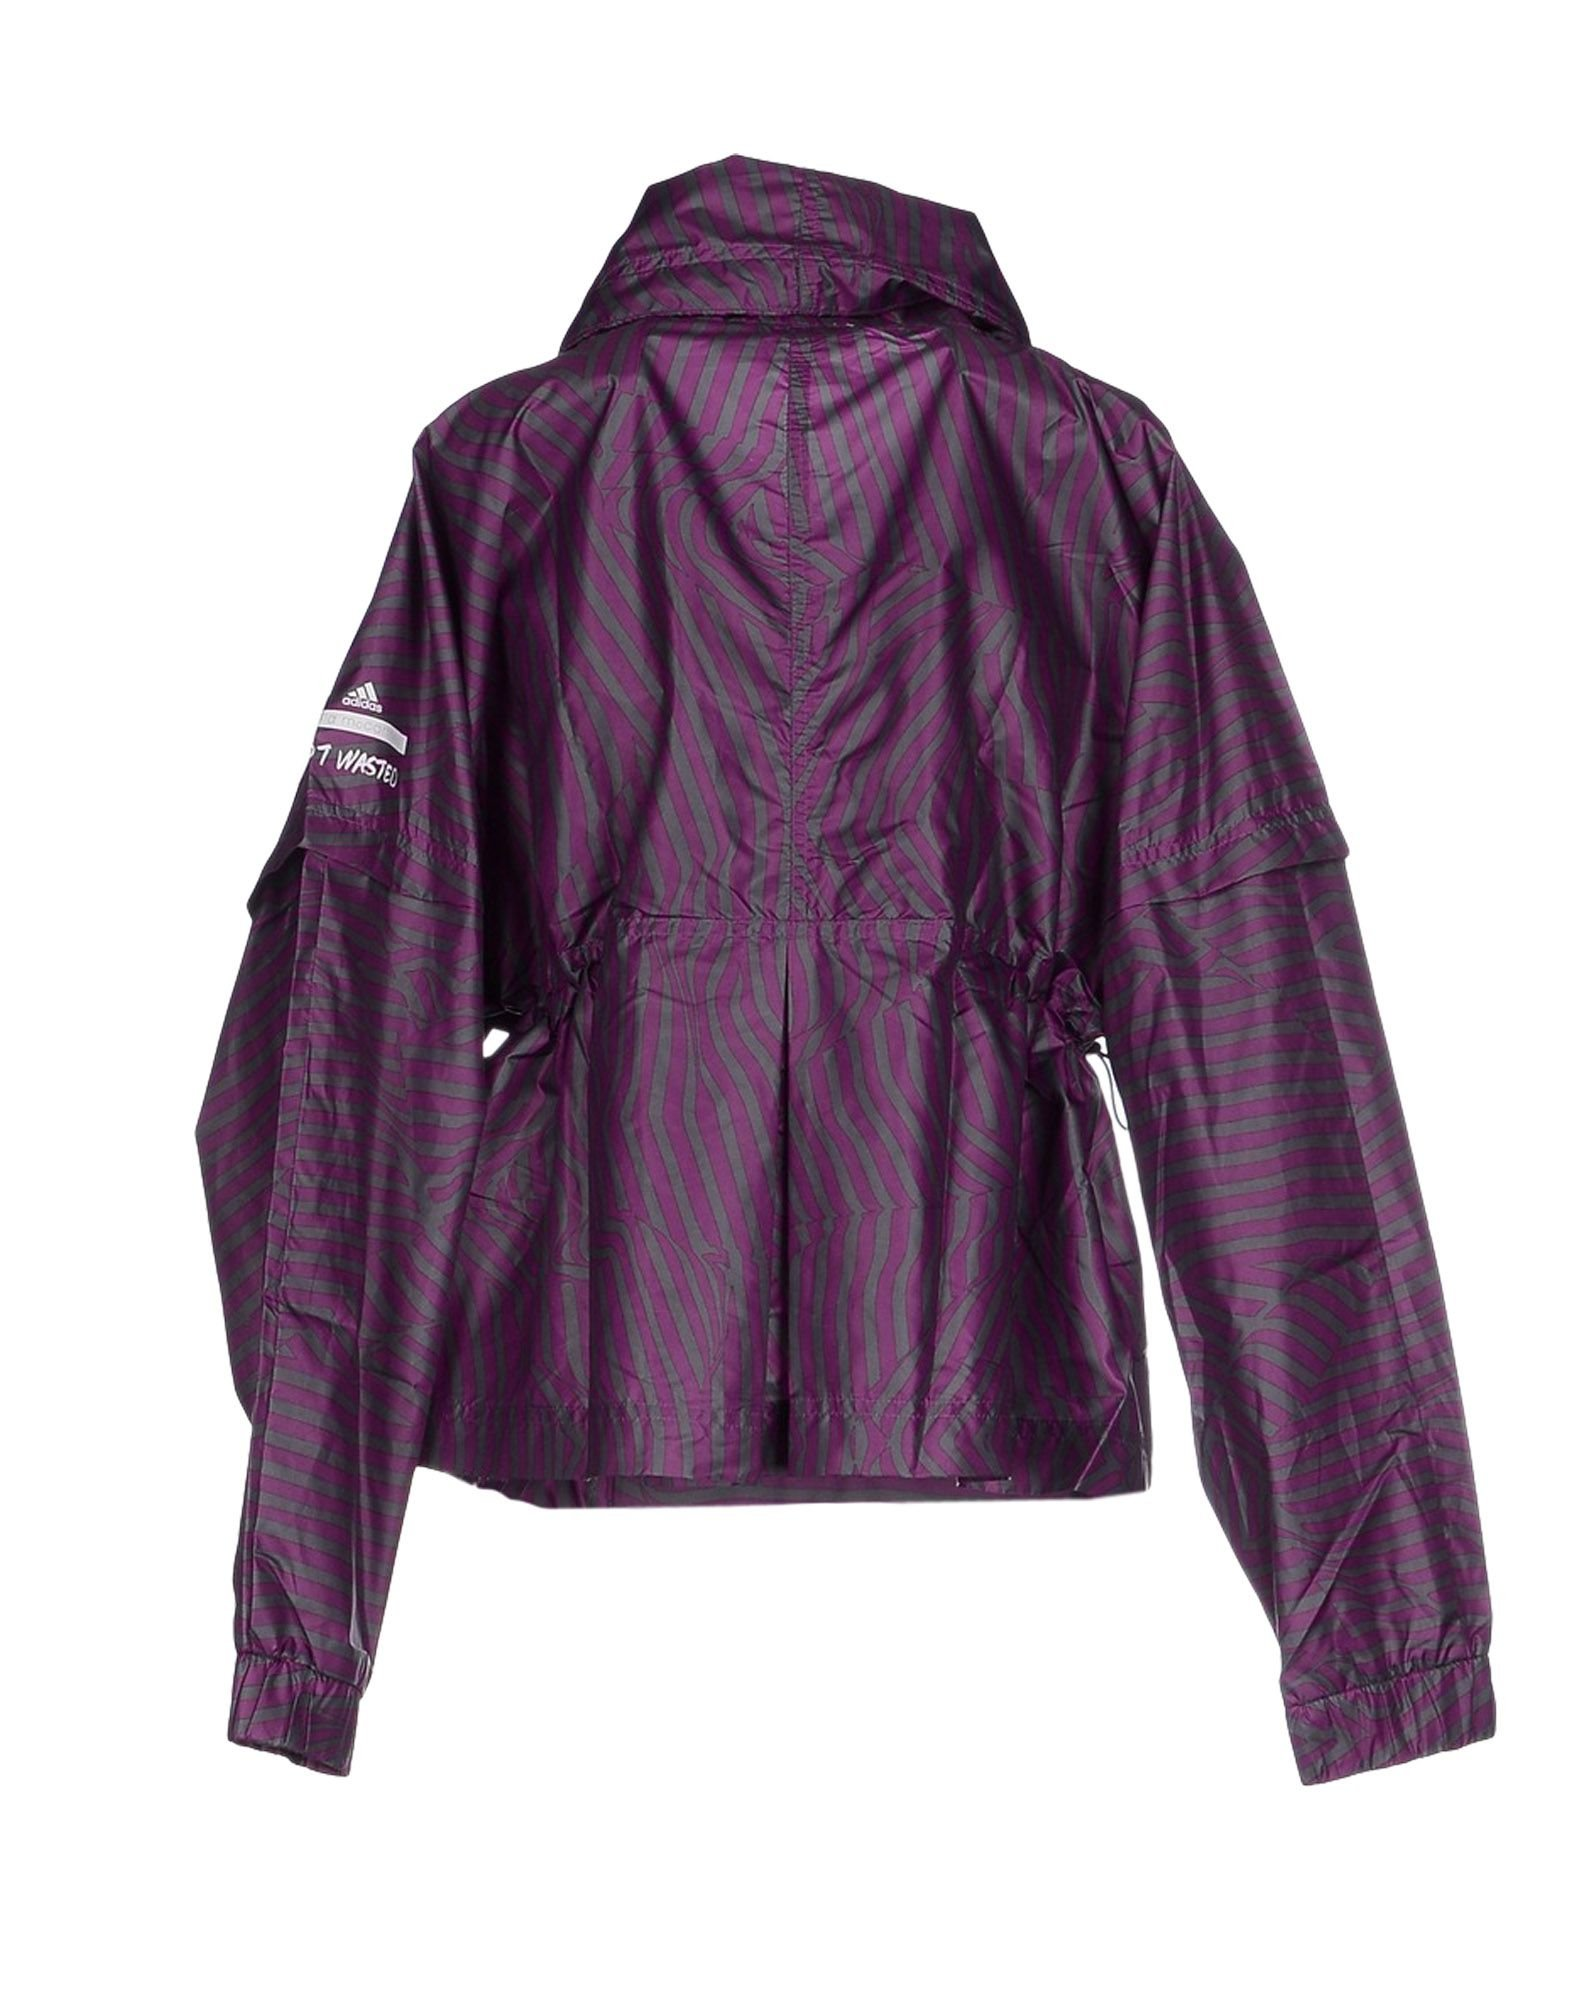 various colors ac173 b2885 Adidas by stella mccartney Oversized Zip-Up Jacket in Purple   Lyst